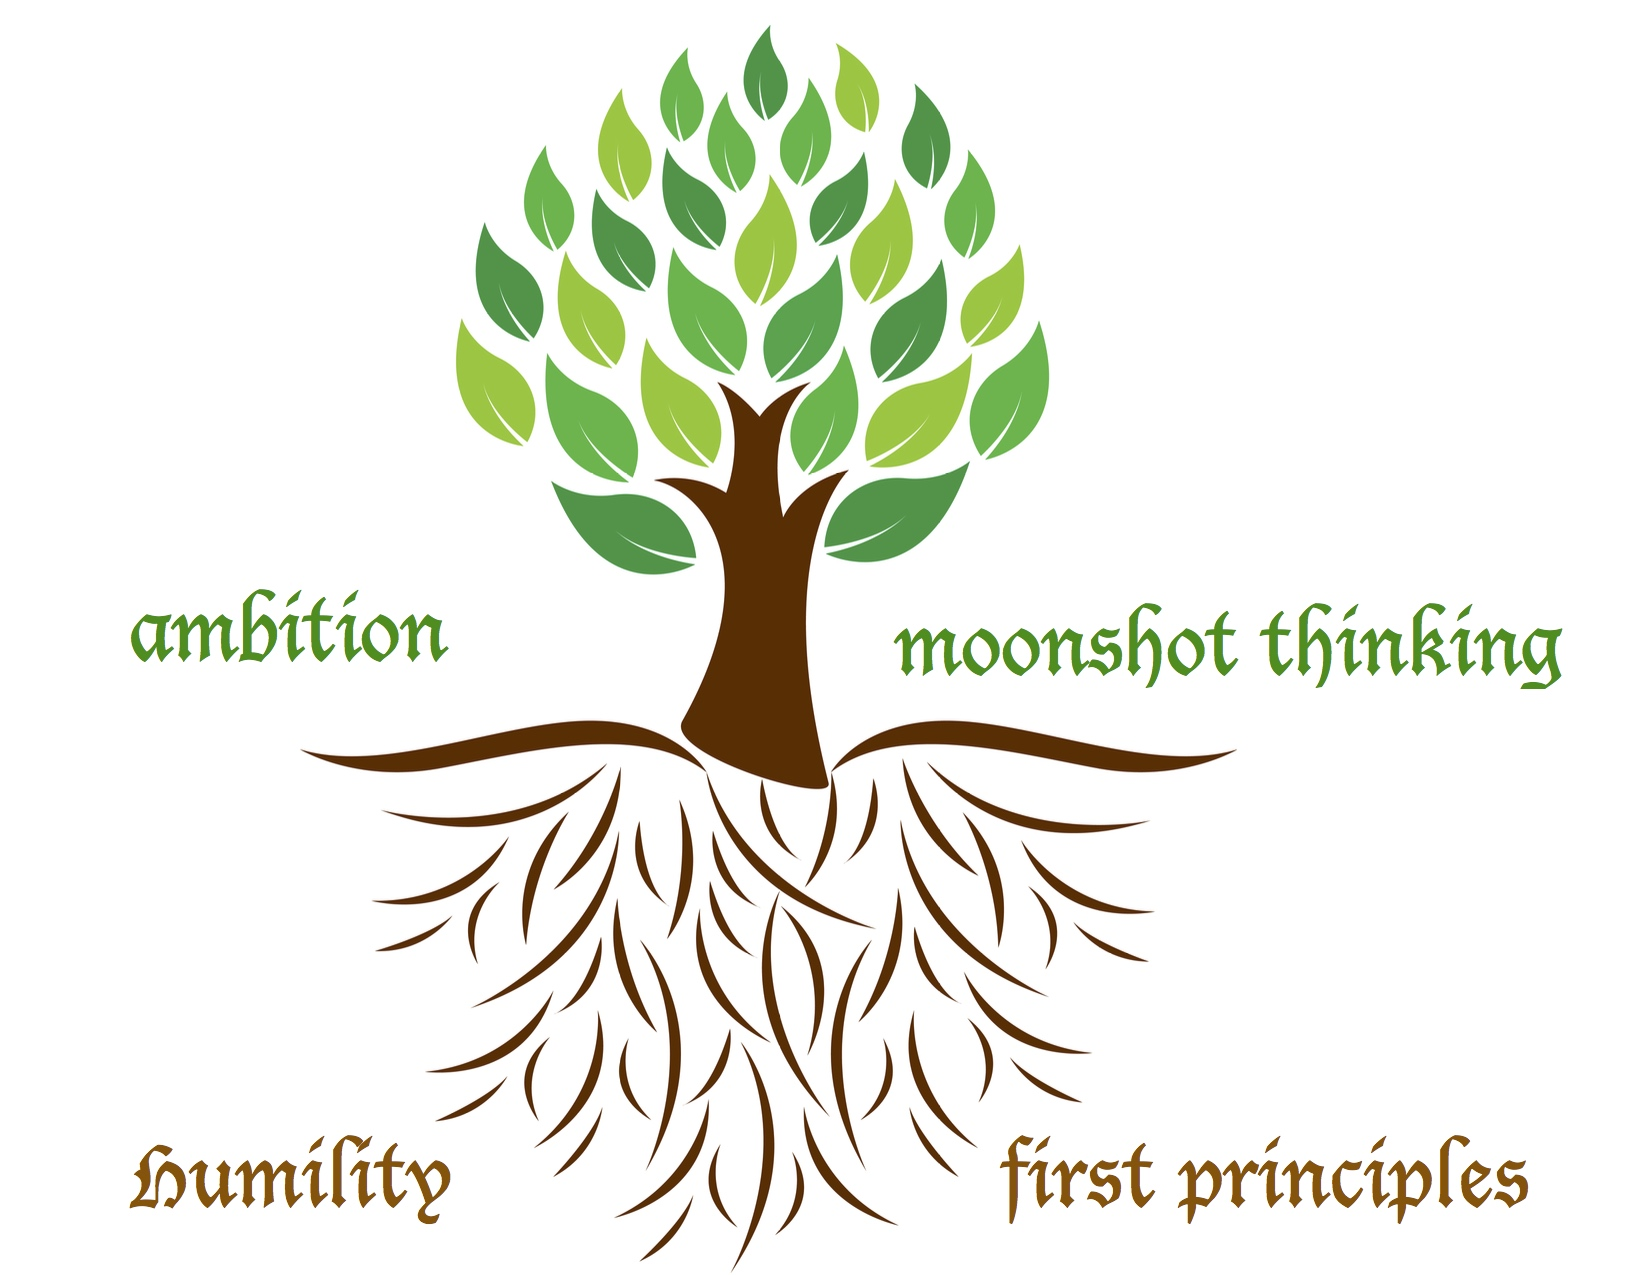 Tree Model for Humility & Ambition